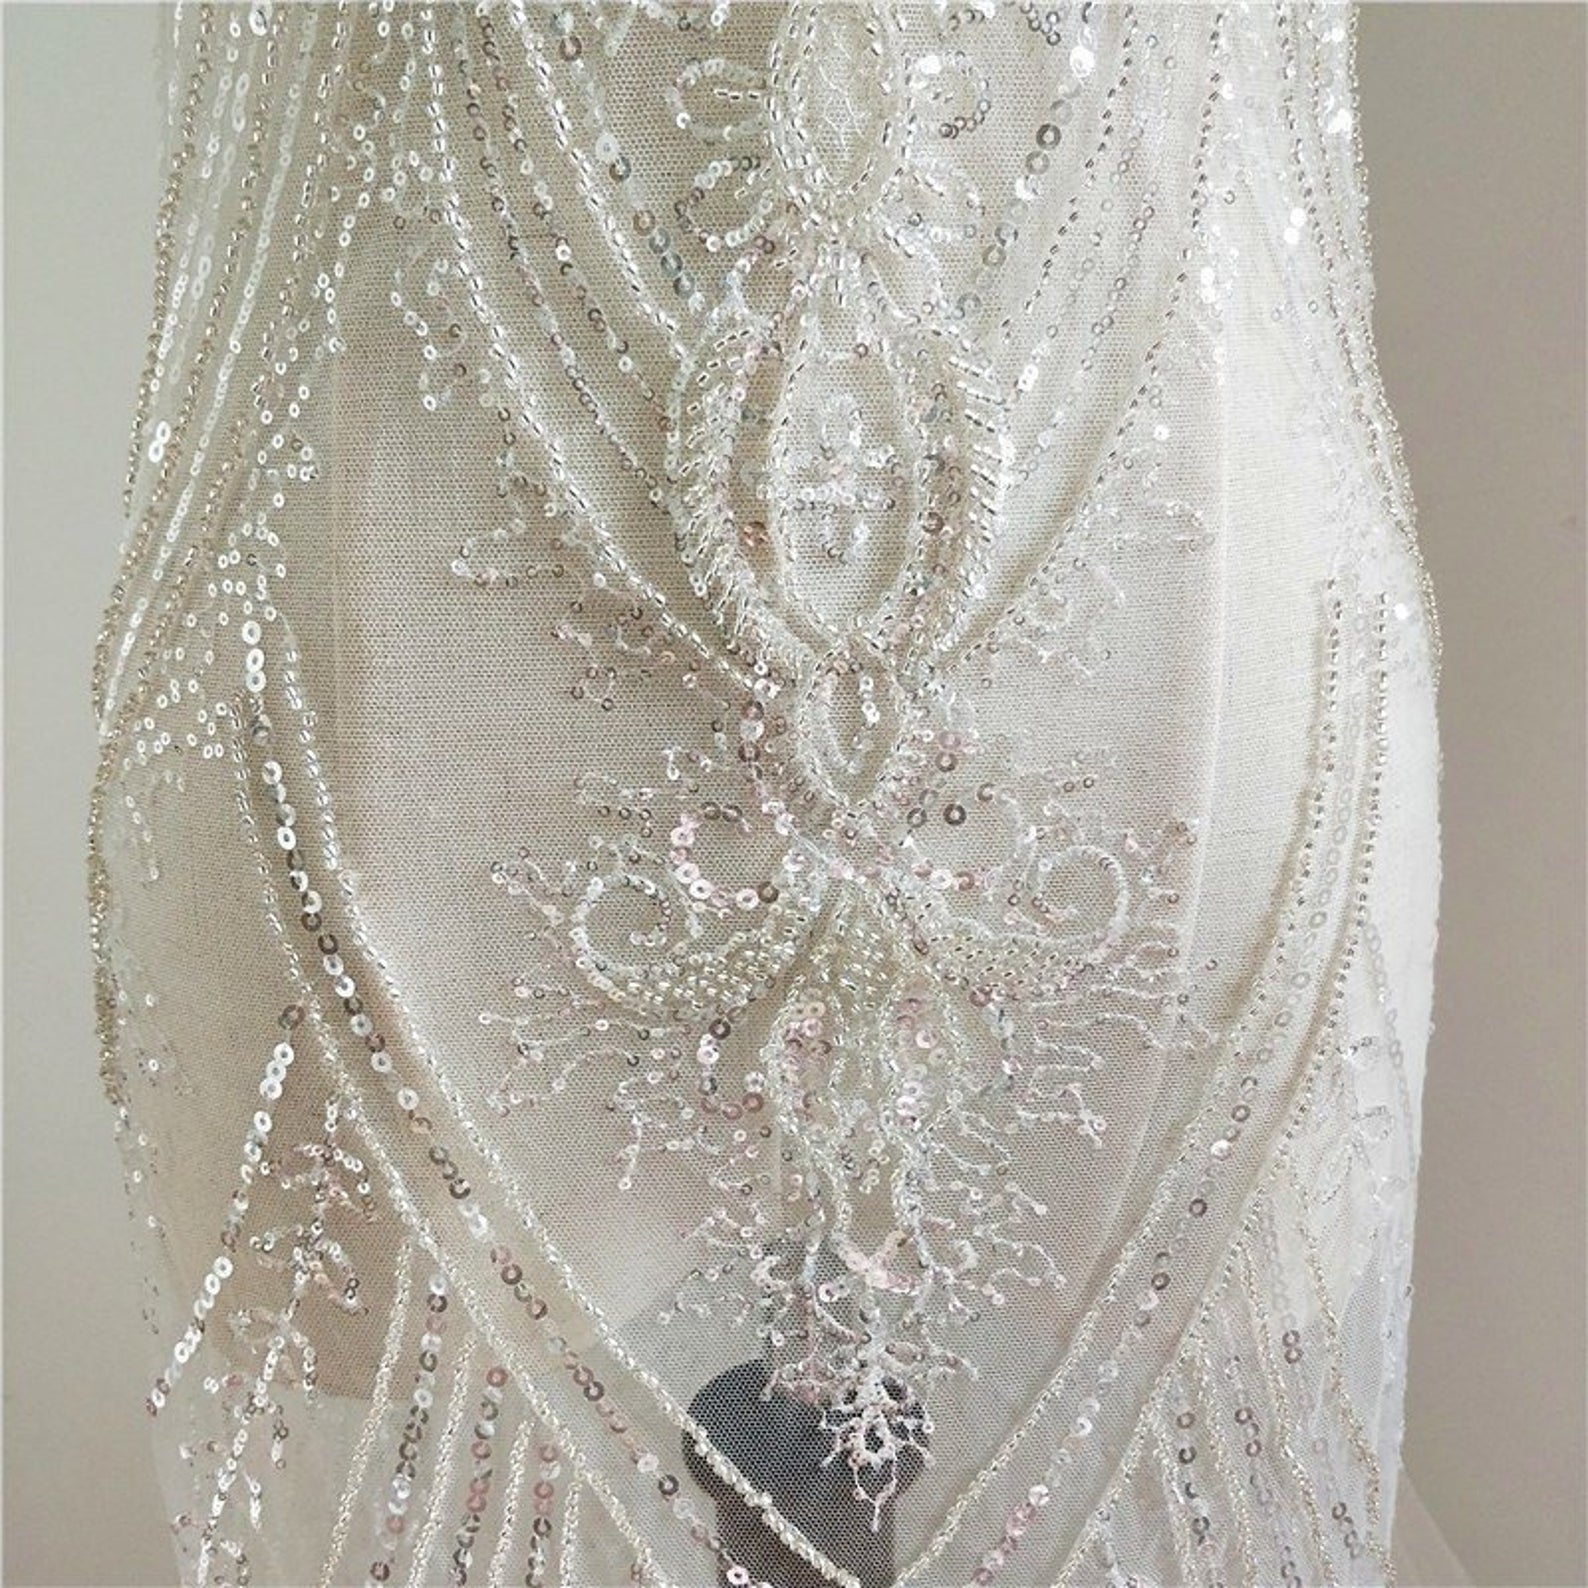 top quality lace fabric bridal wedding lace elegant fine tulle lace with double Ivory cotton embroidered edges half yard on sale